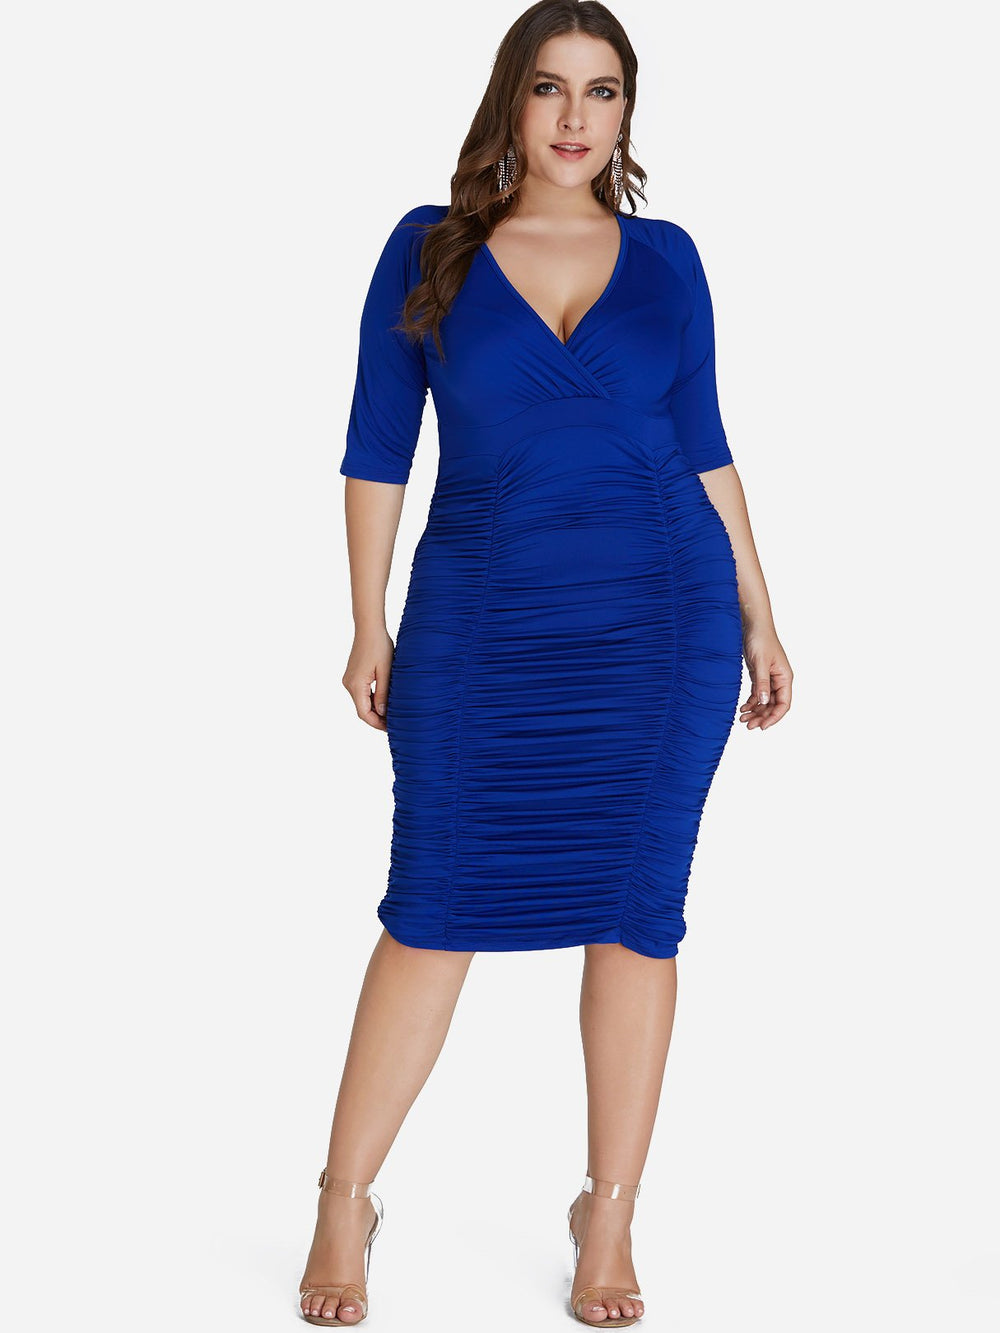 V-Neck Plain Wrap Half Sleeve Blue Plus Size Dress